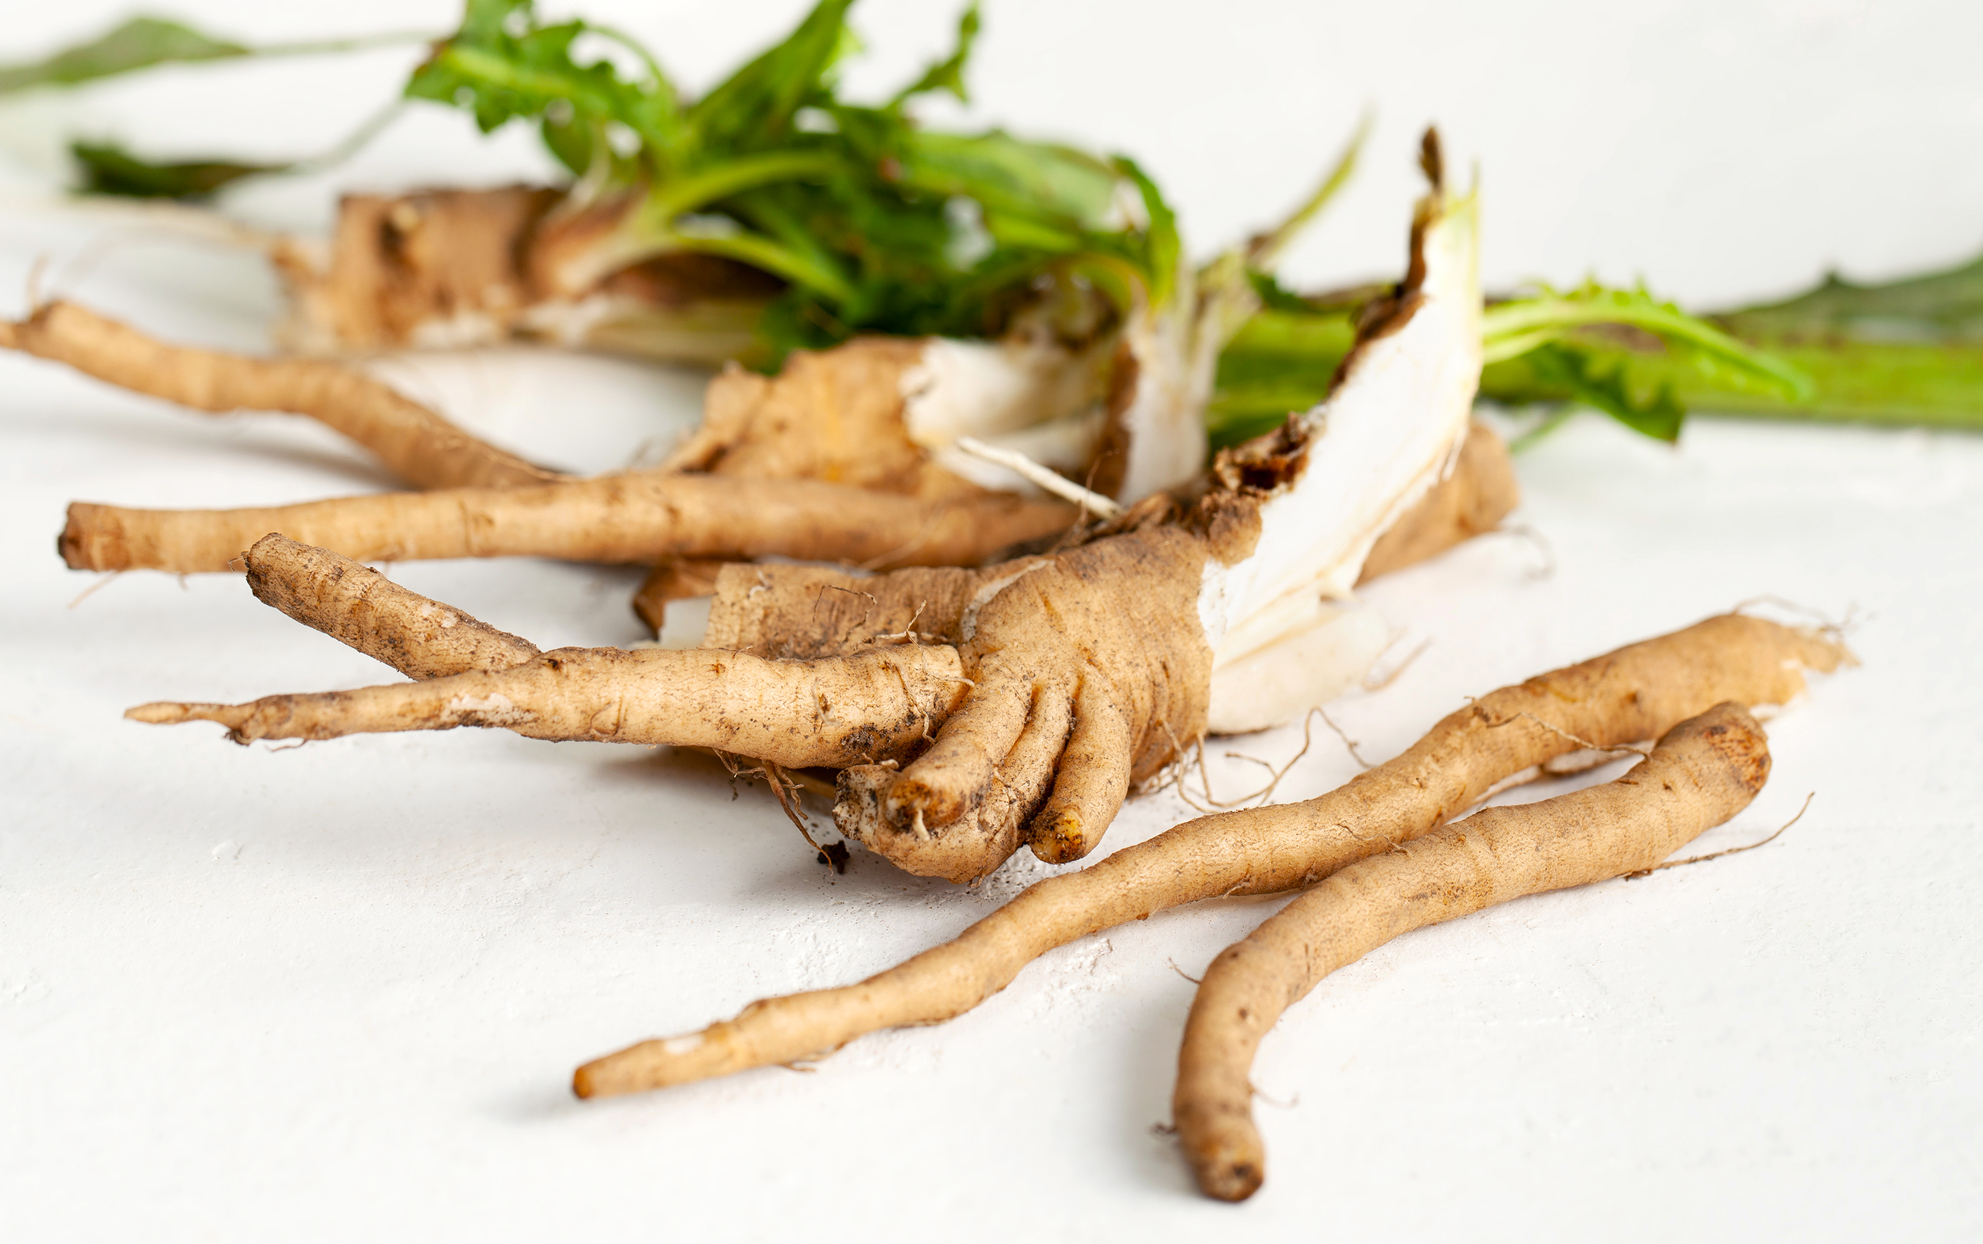 Crude chicory root on a white surface